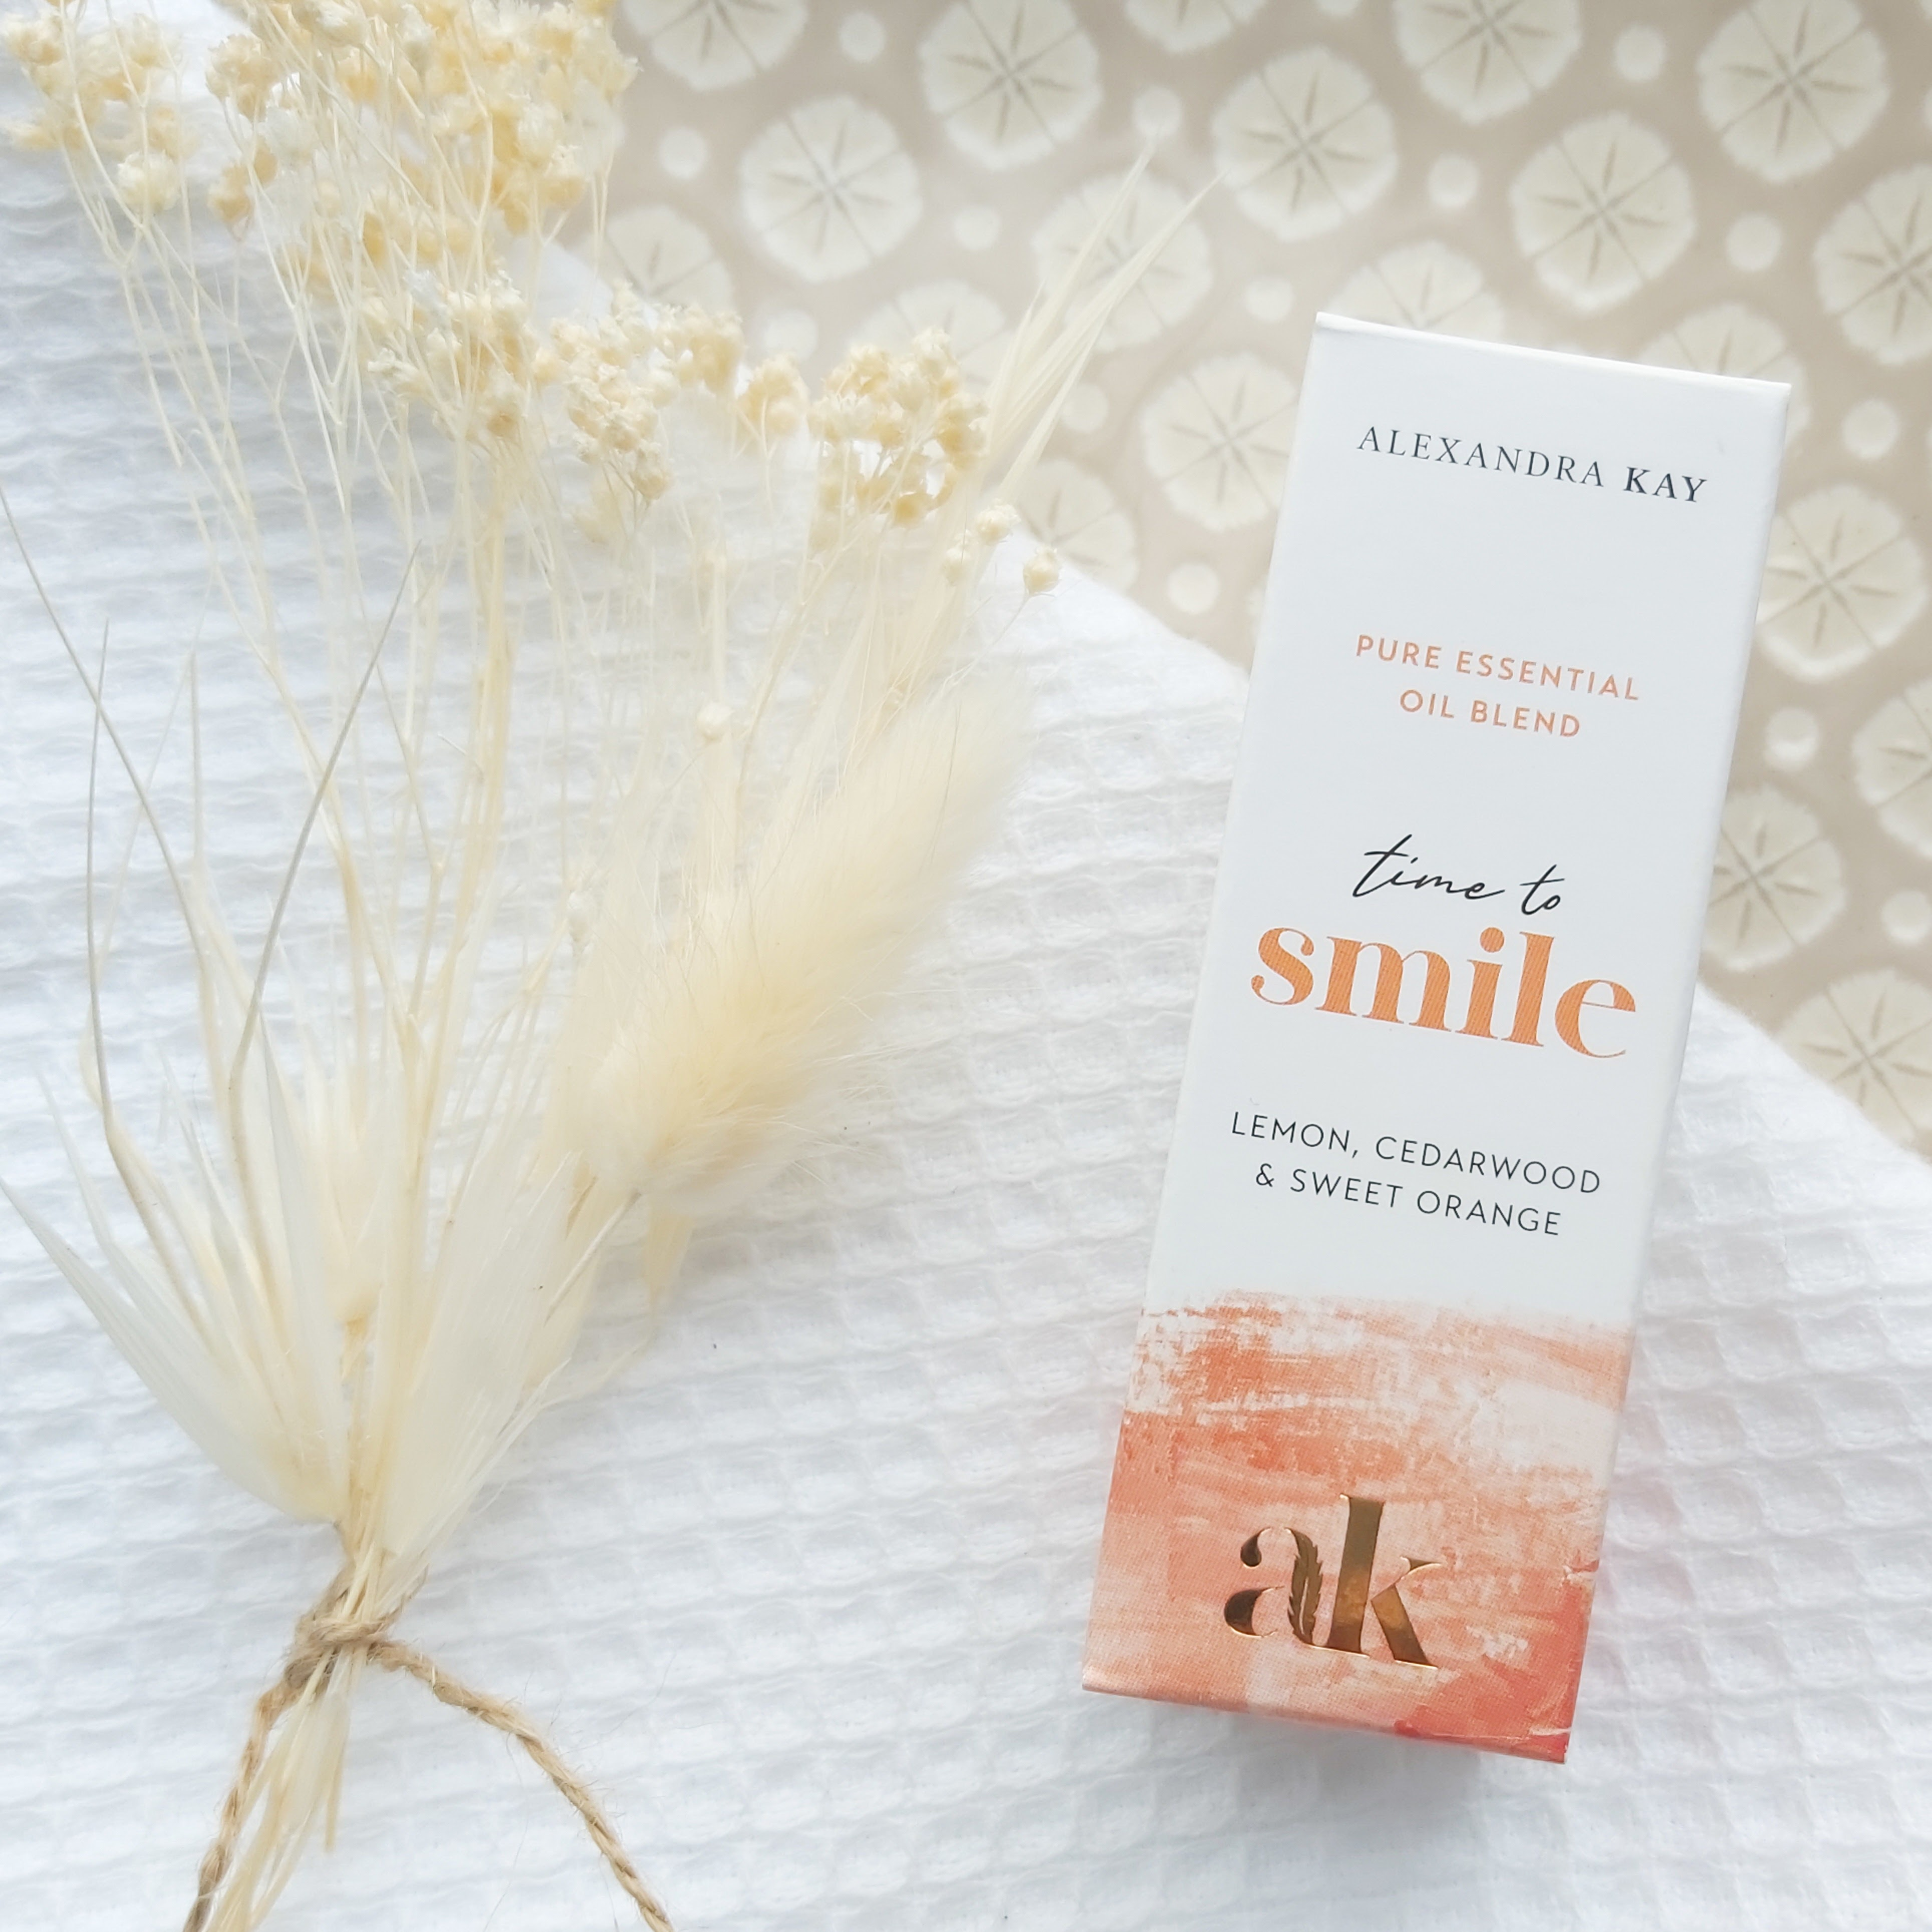 Green People's Alexandra Kay Wellness Time to Smile Essential Oil Box on a plate with dried flowers. Review by Beauty Folio